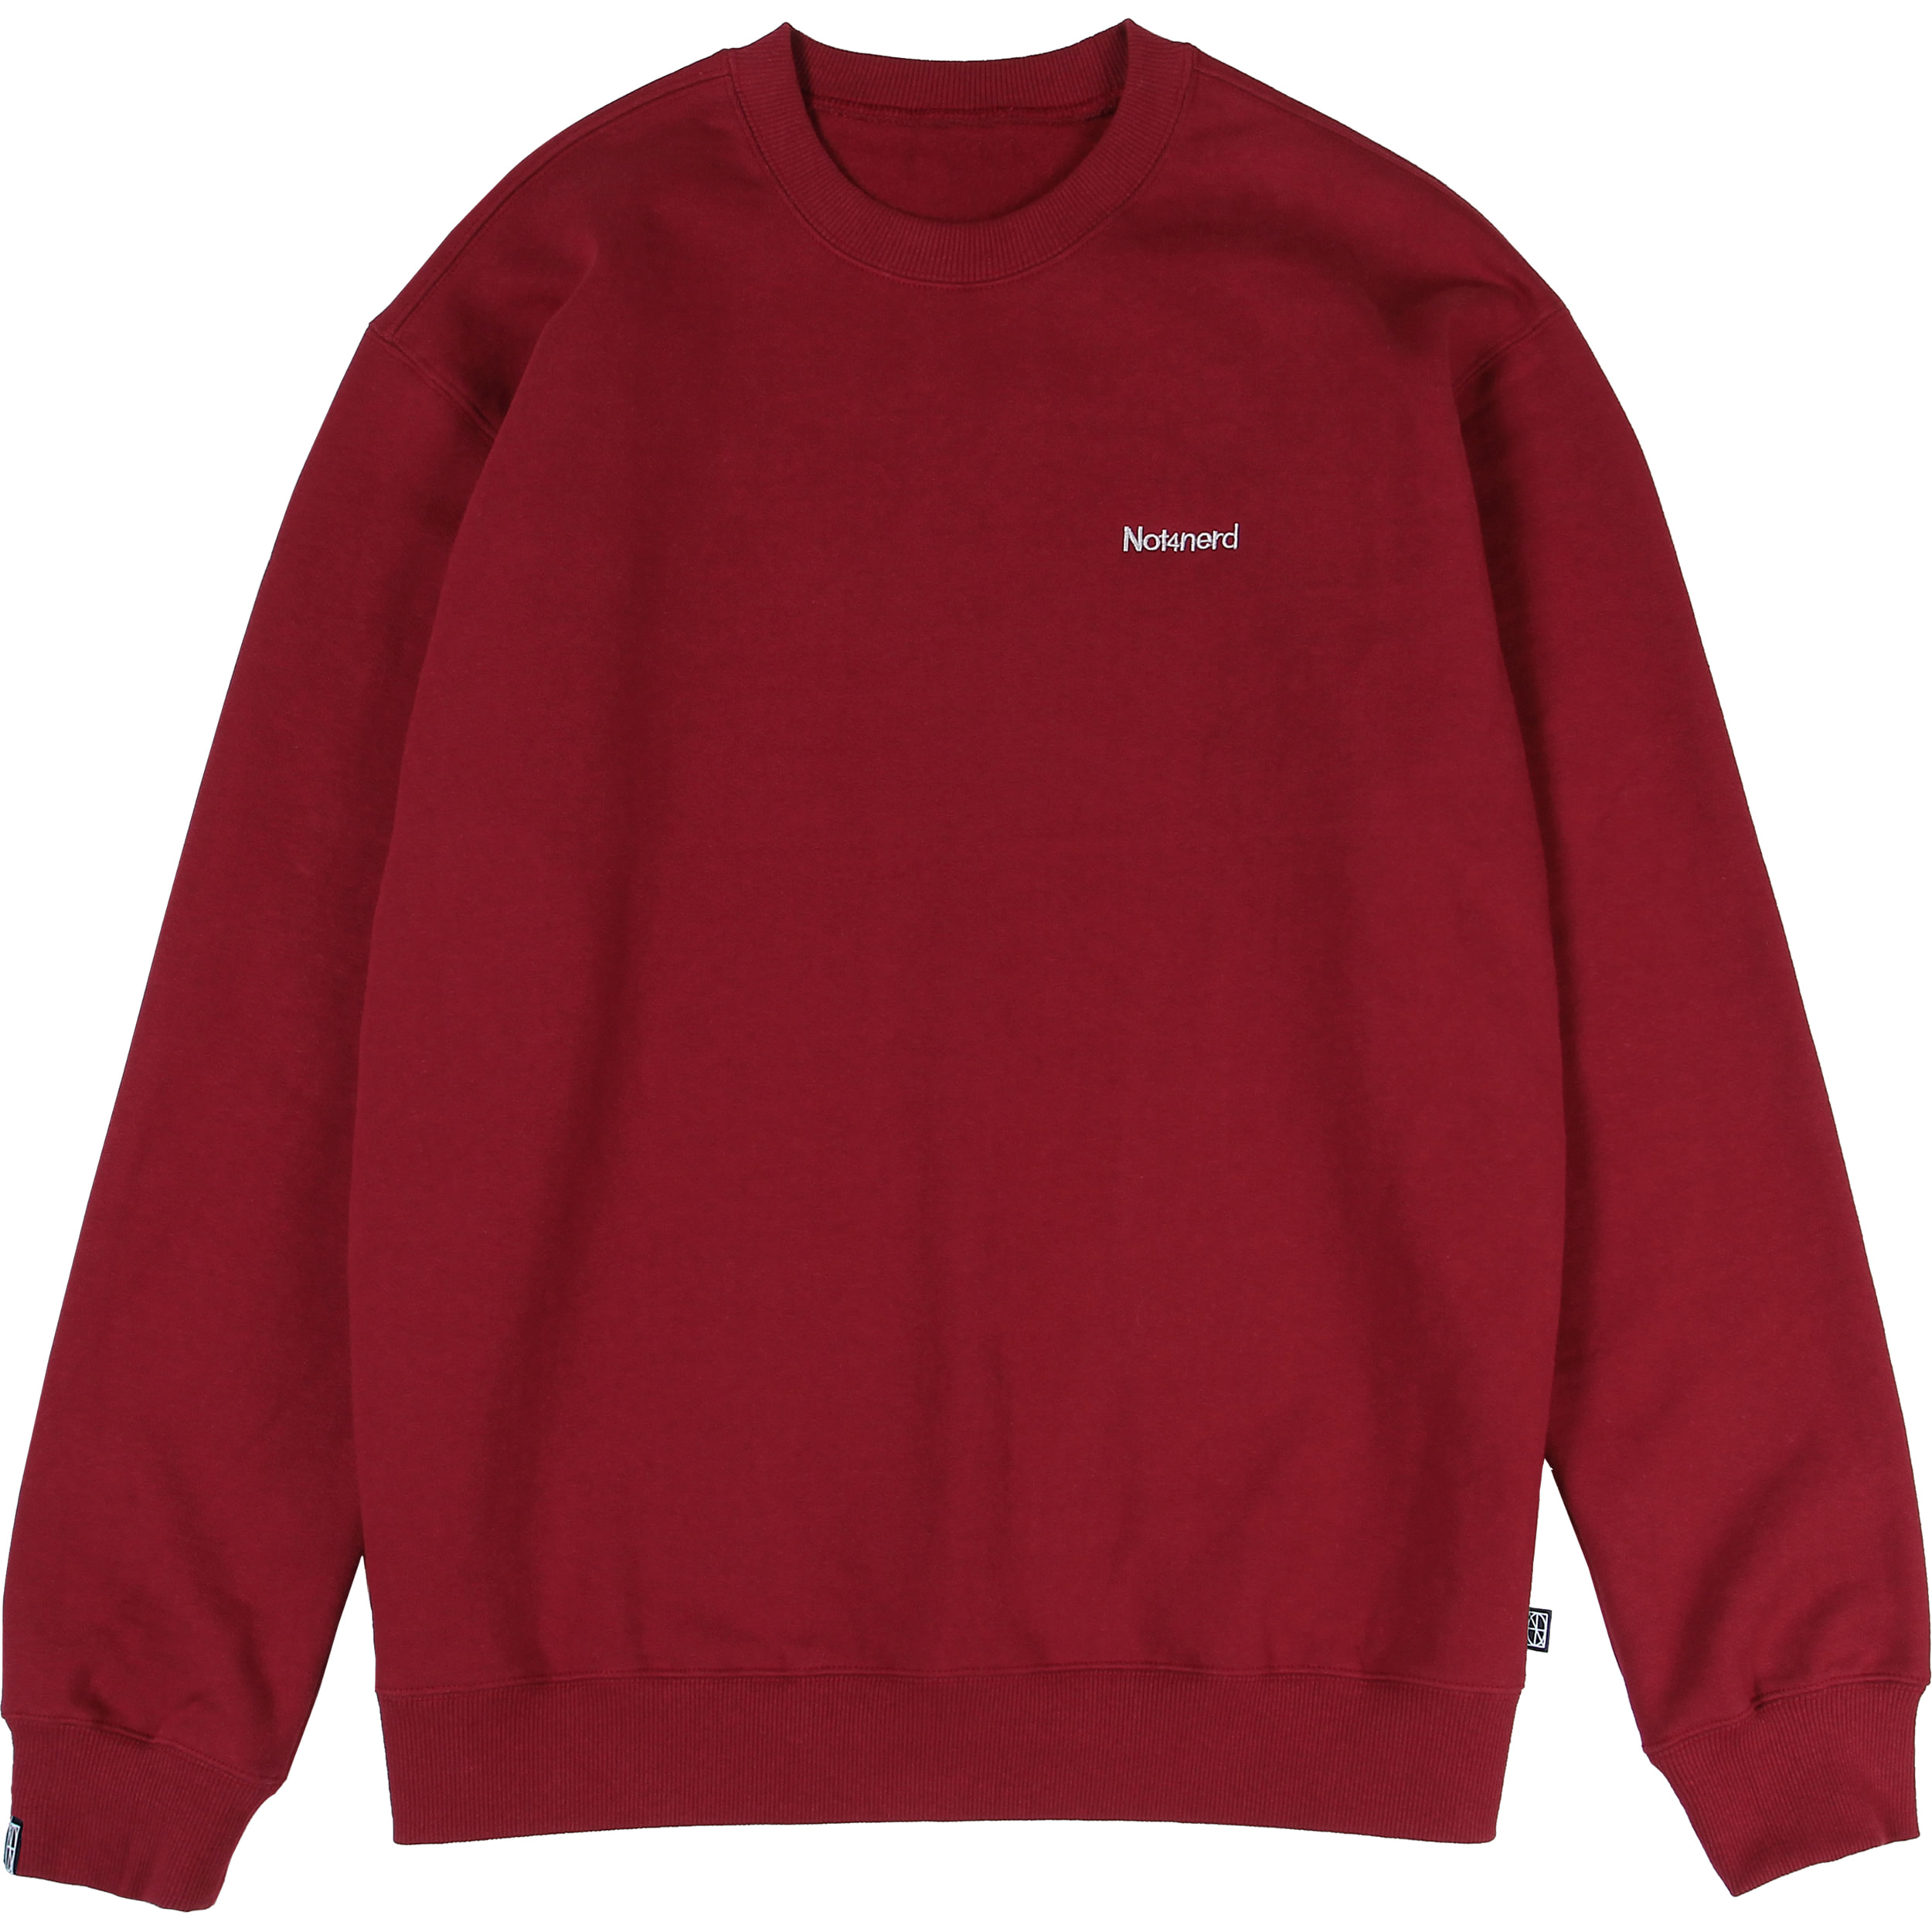 Narcissism Crewneck [Red],NOT4NERD